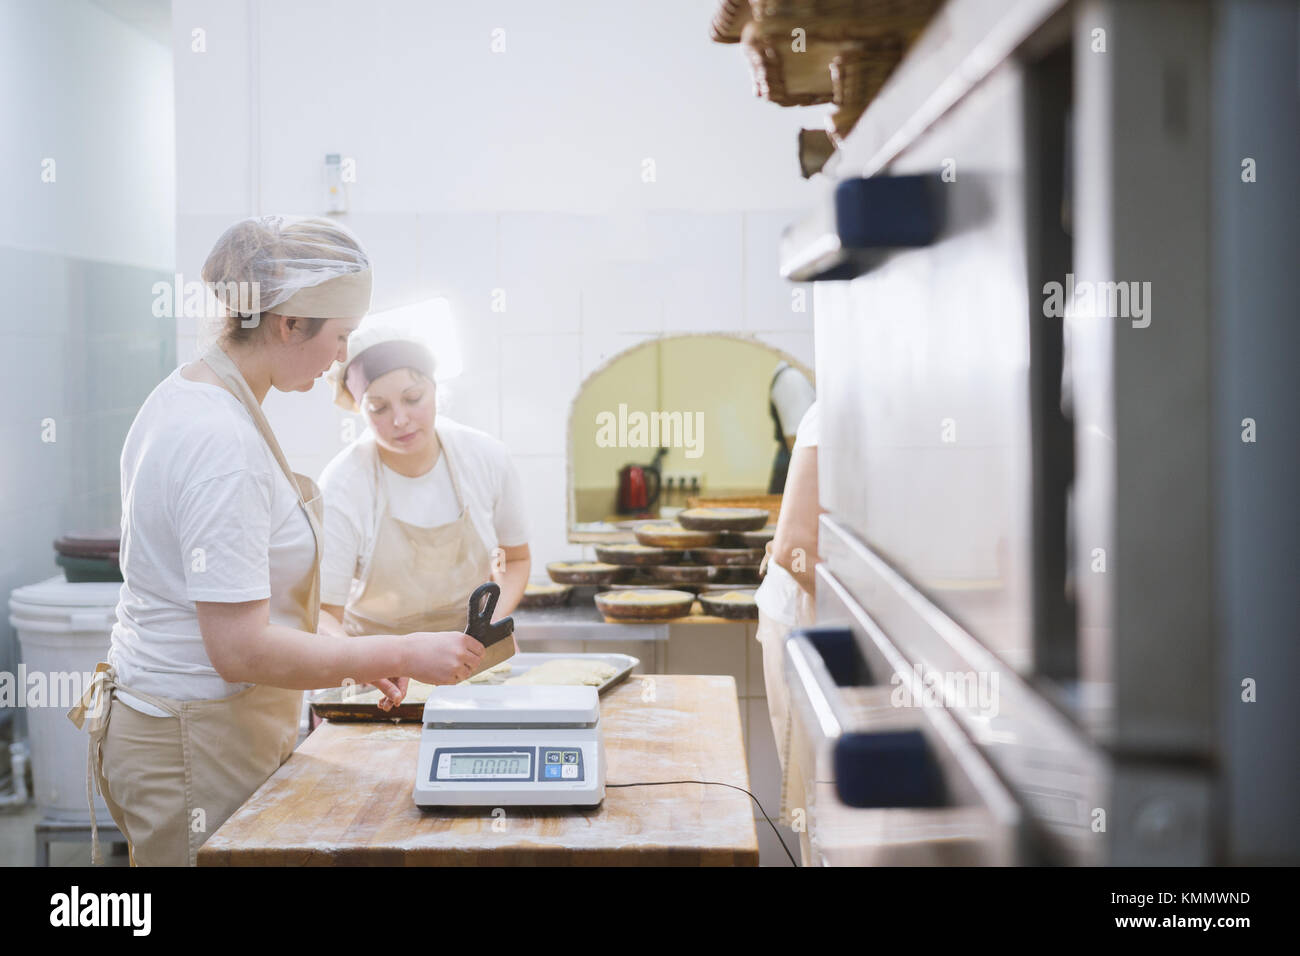 Smiling cooks work in the bakery - Stock Image